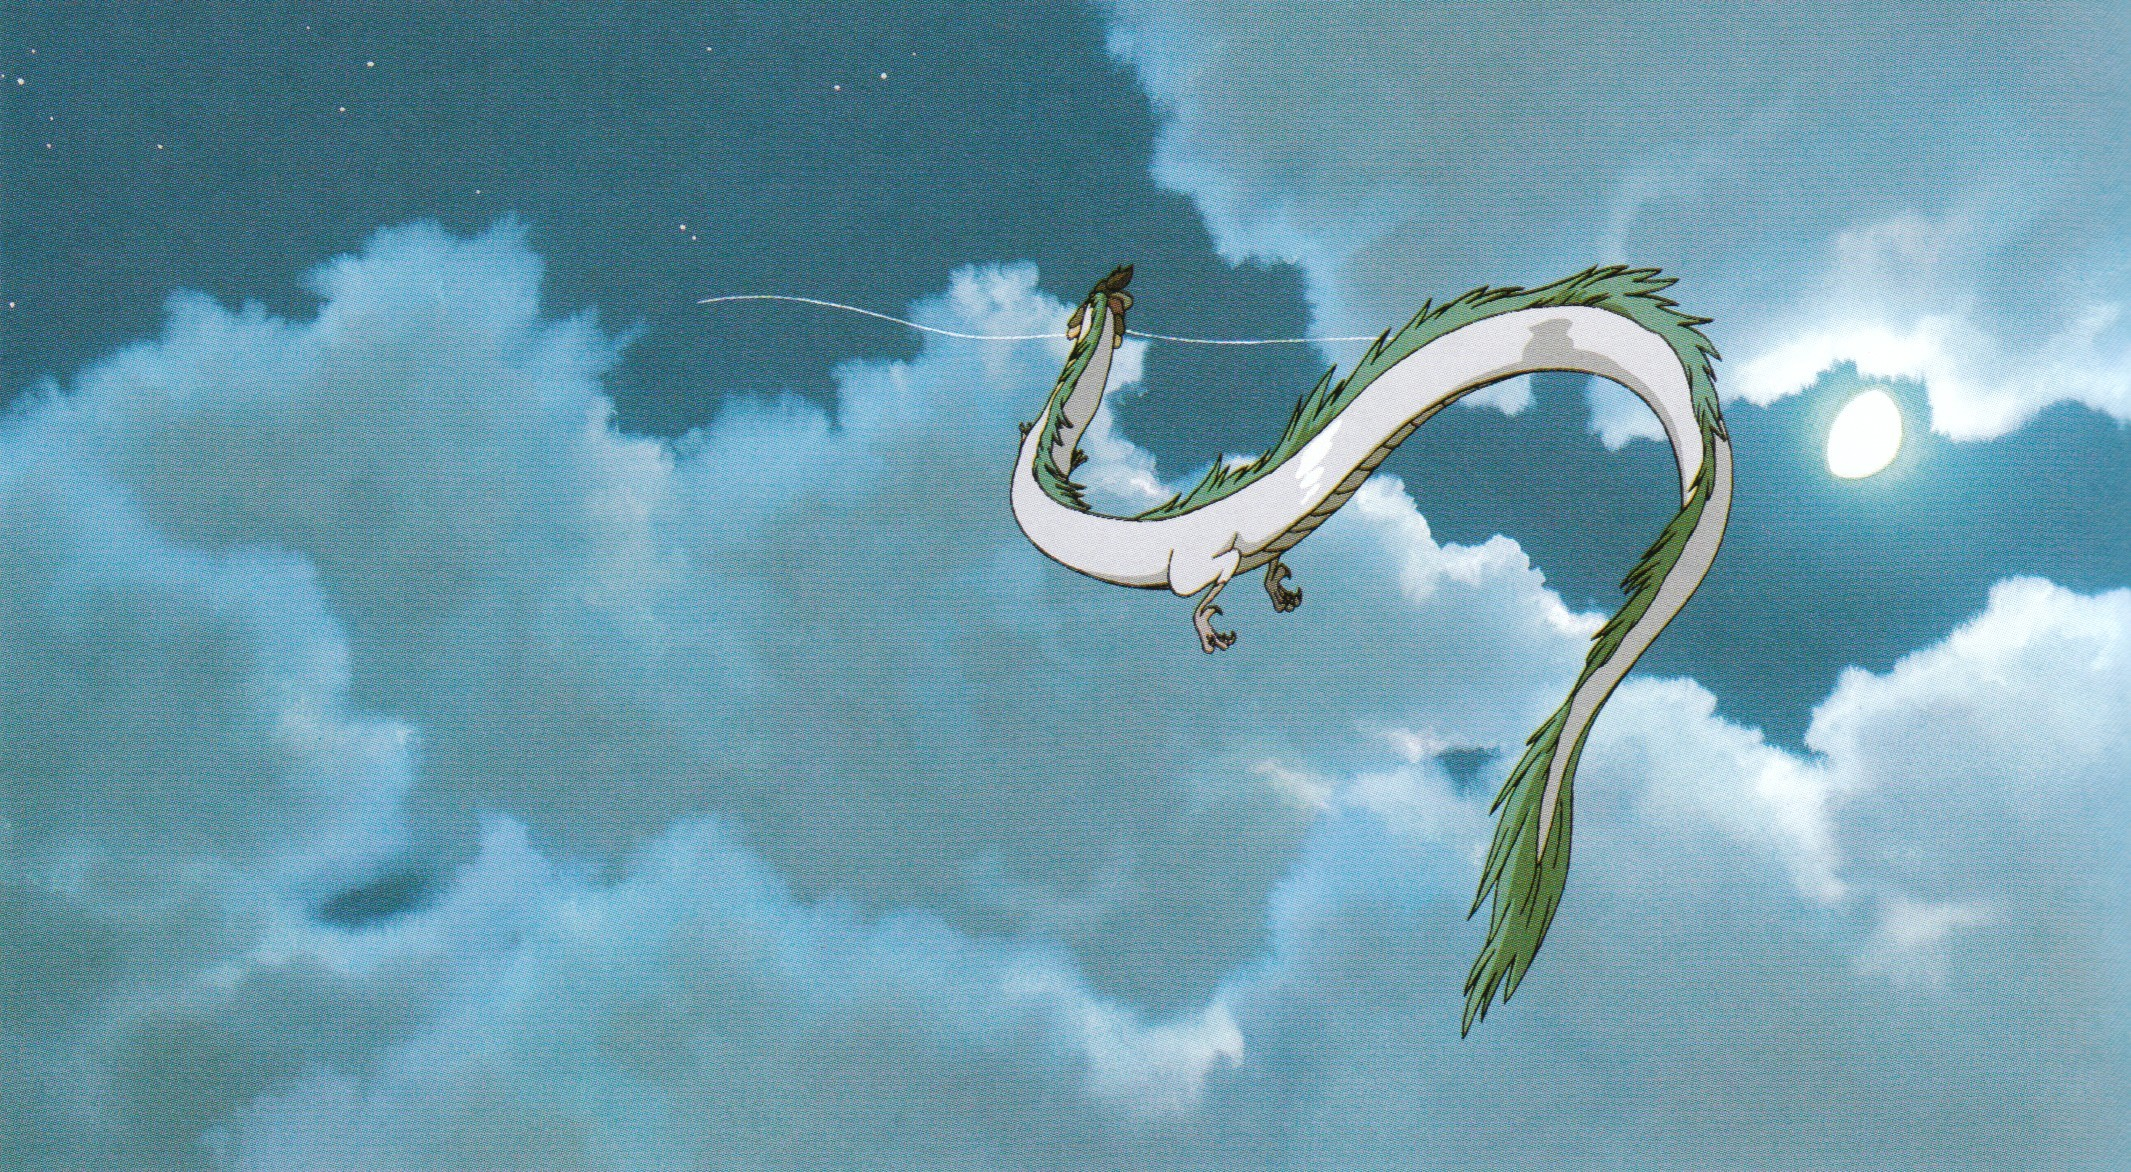 2131x1172 Haku (Dragon) · download Haku (Dragon) image